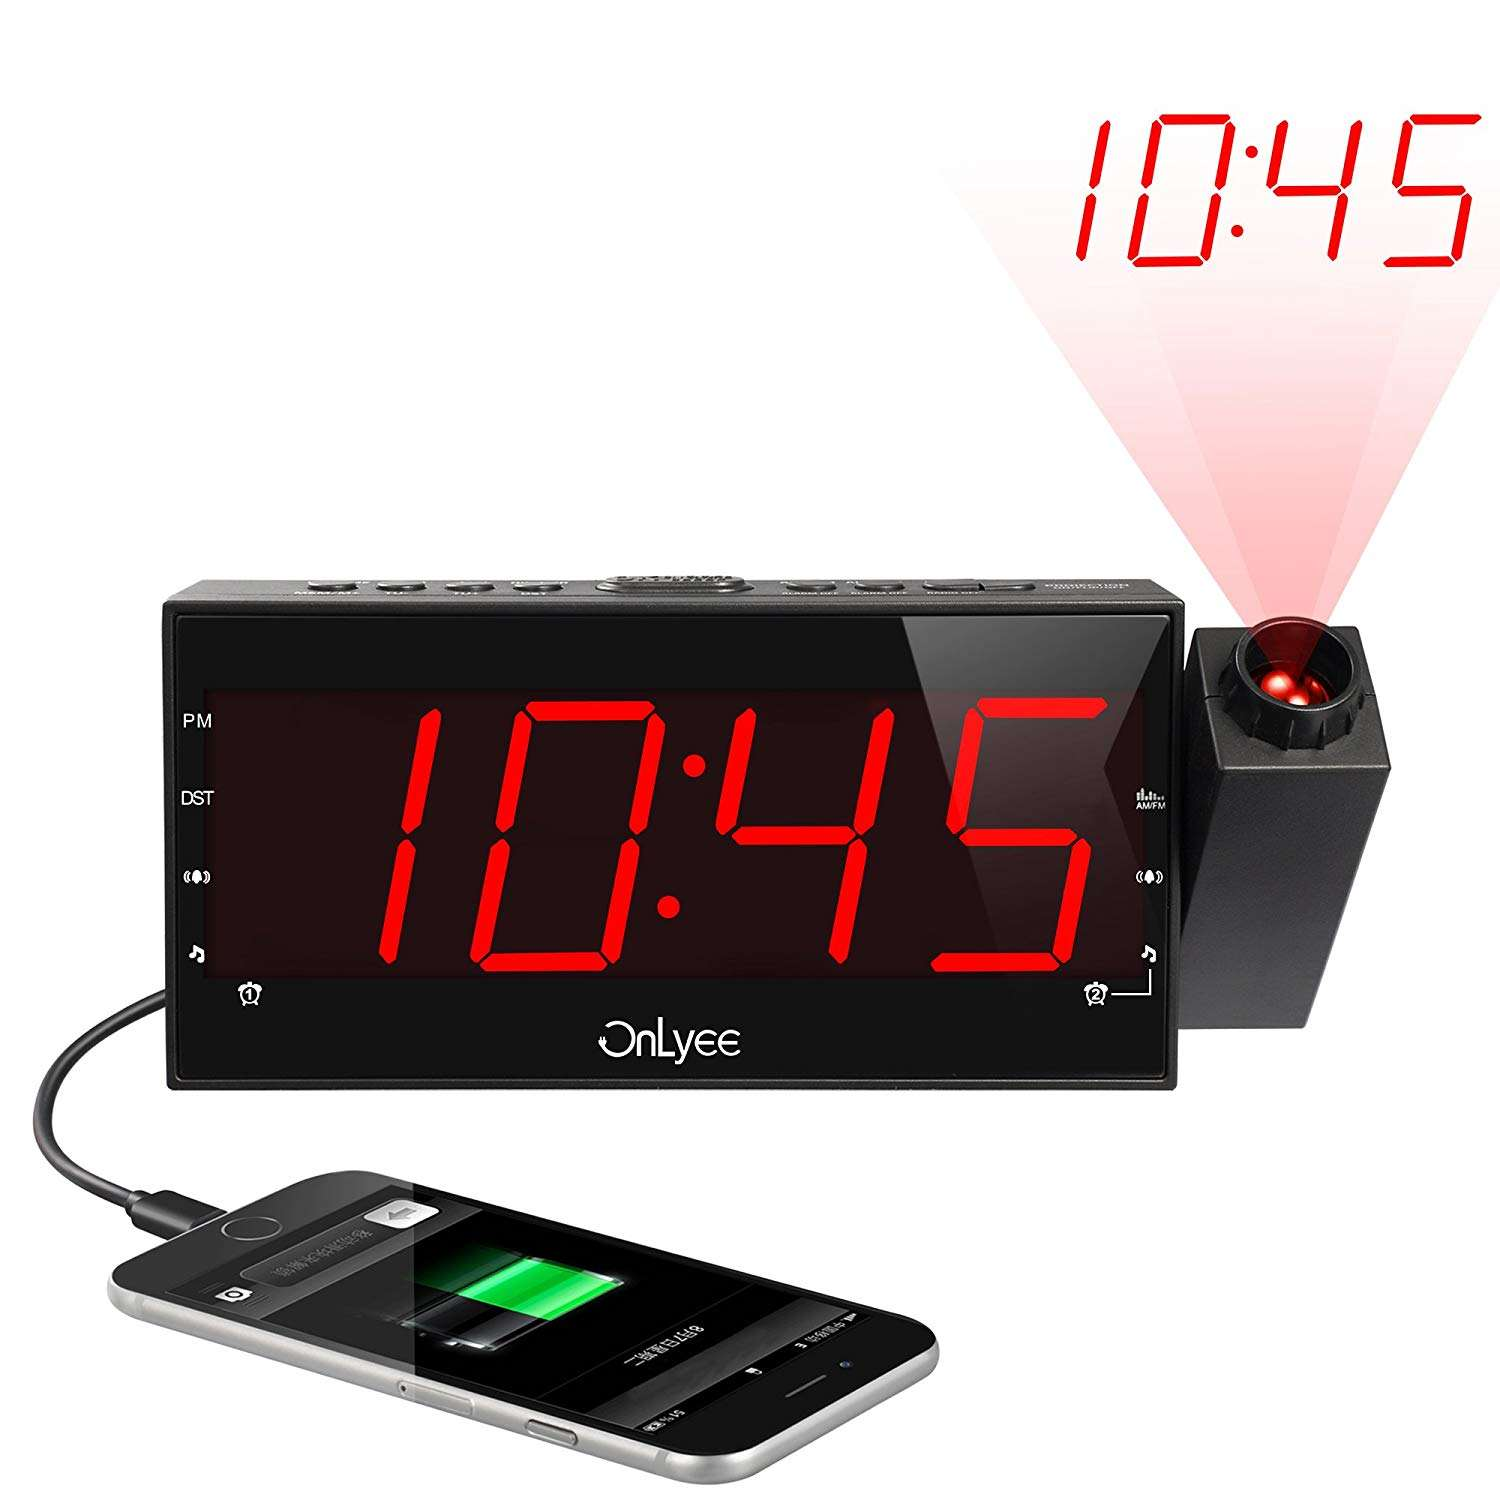 Multifunction Projection Digital Alarm Clock FM Radio with Dimmer, Snooze, Sleep Timer